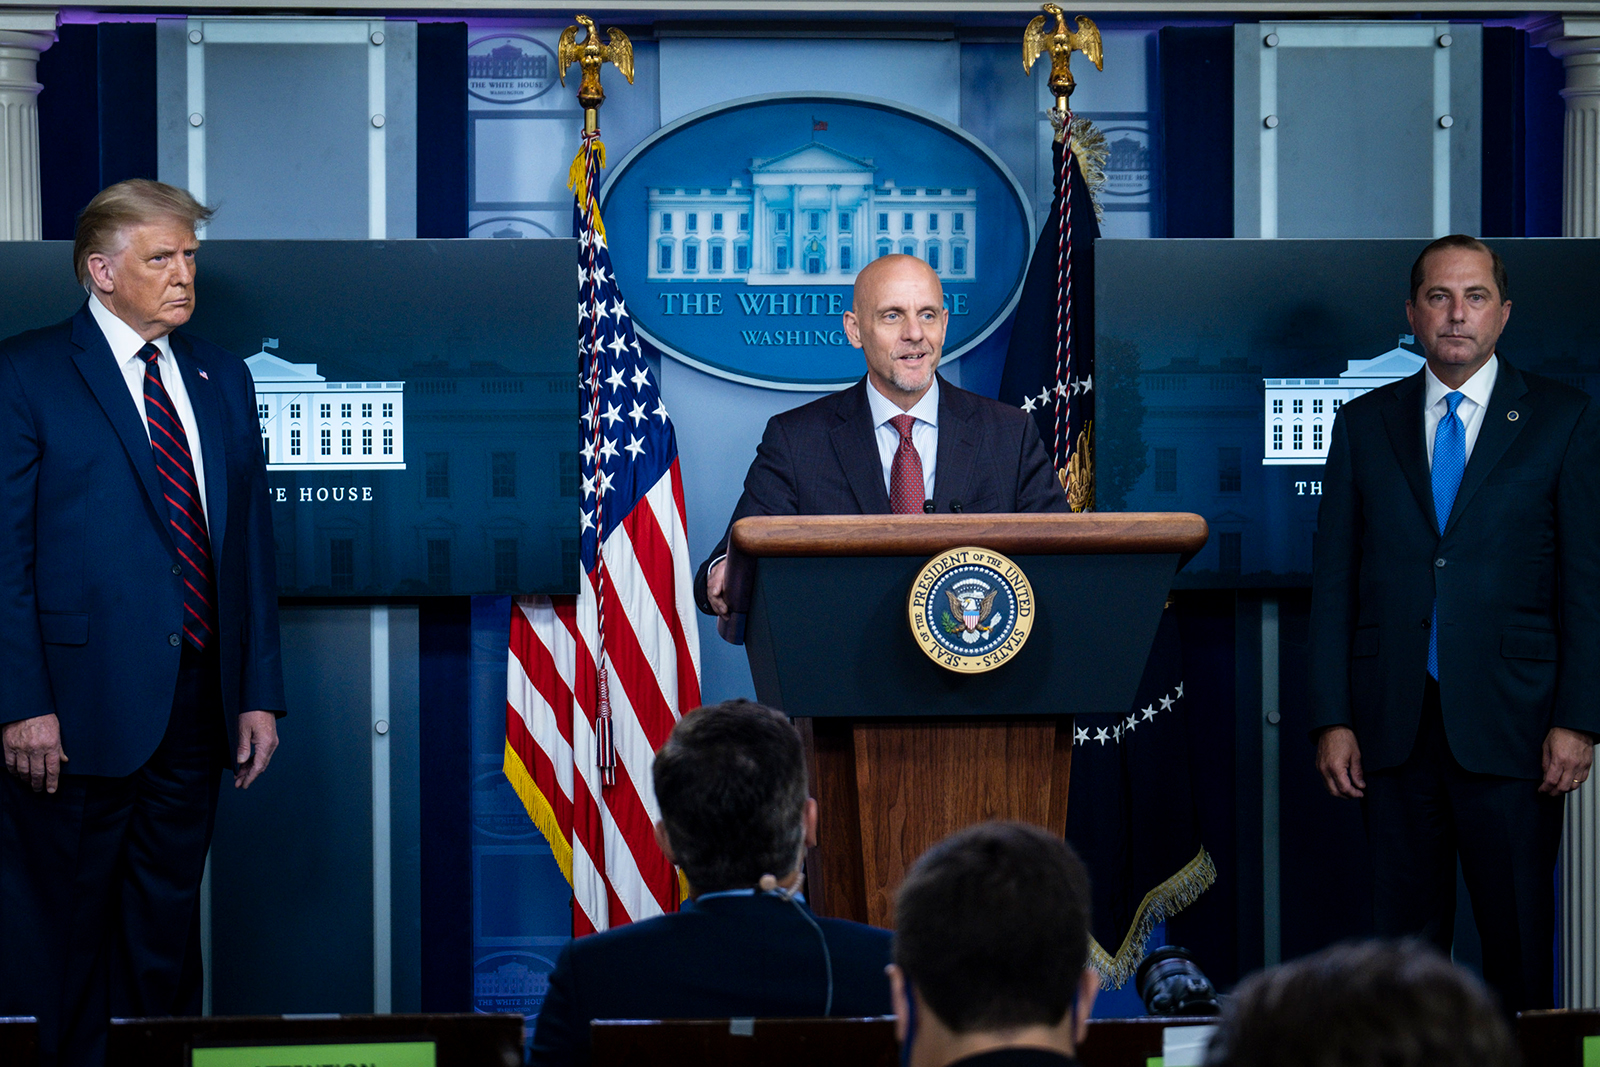 US President Donald Trump and Health and Human Services Secretary, Alex Azar look on as FDA Commissioner Stephen Hahn addresses the media during a press conference in James S. Brady Briefing Room at the White House on on August 23, in Washington, DC.